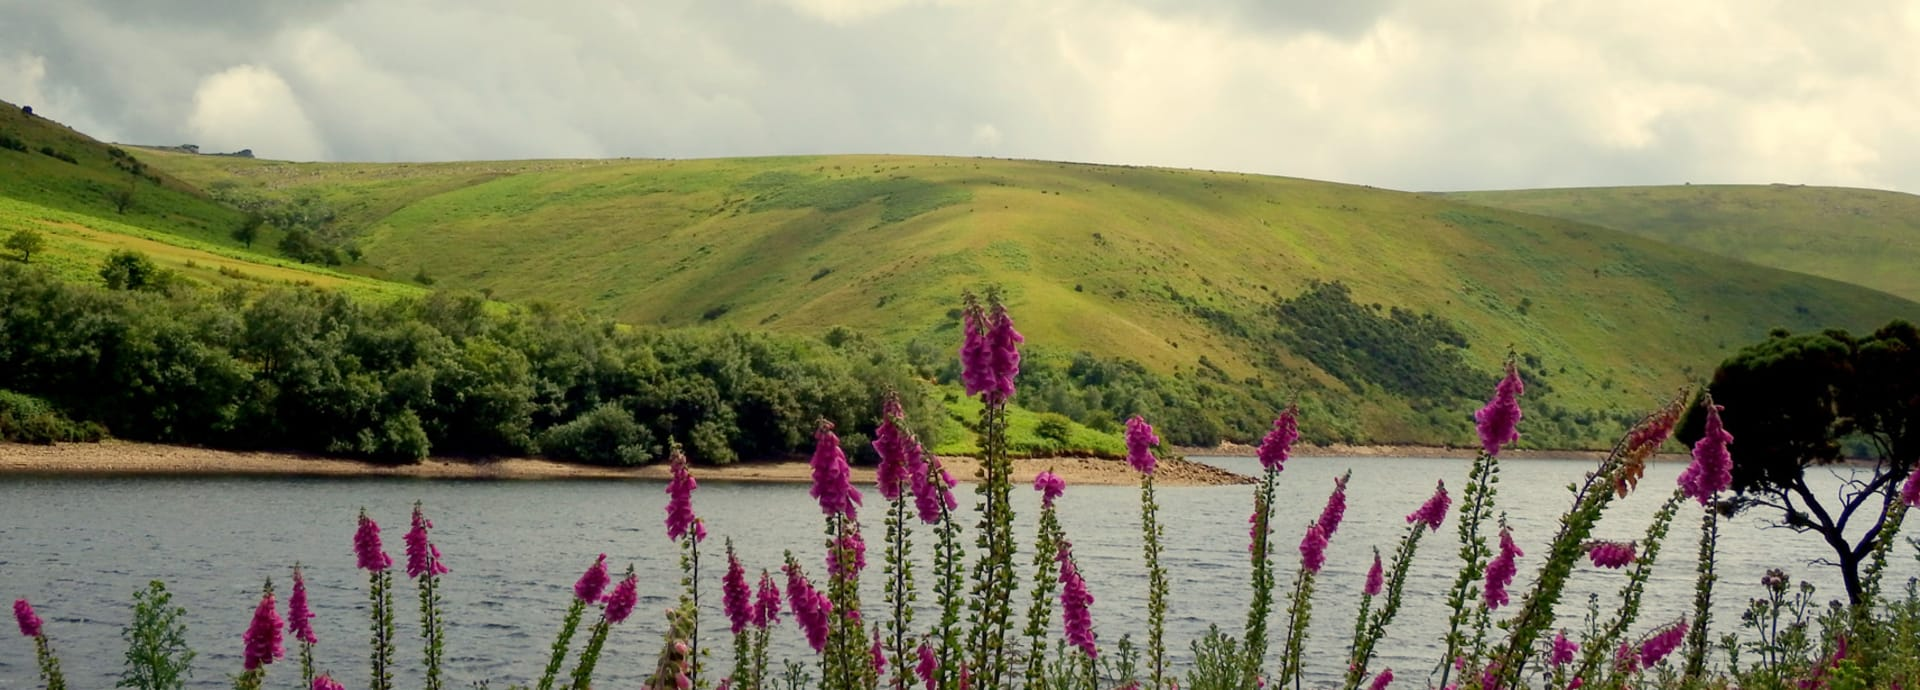 Lakes in the South West to remain open to visitors during lockdown